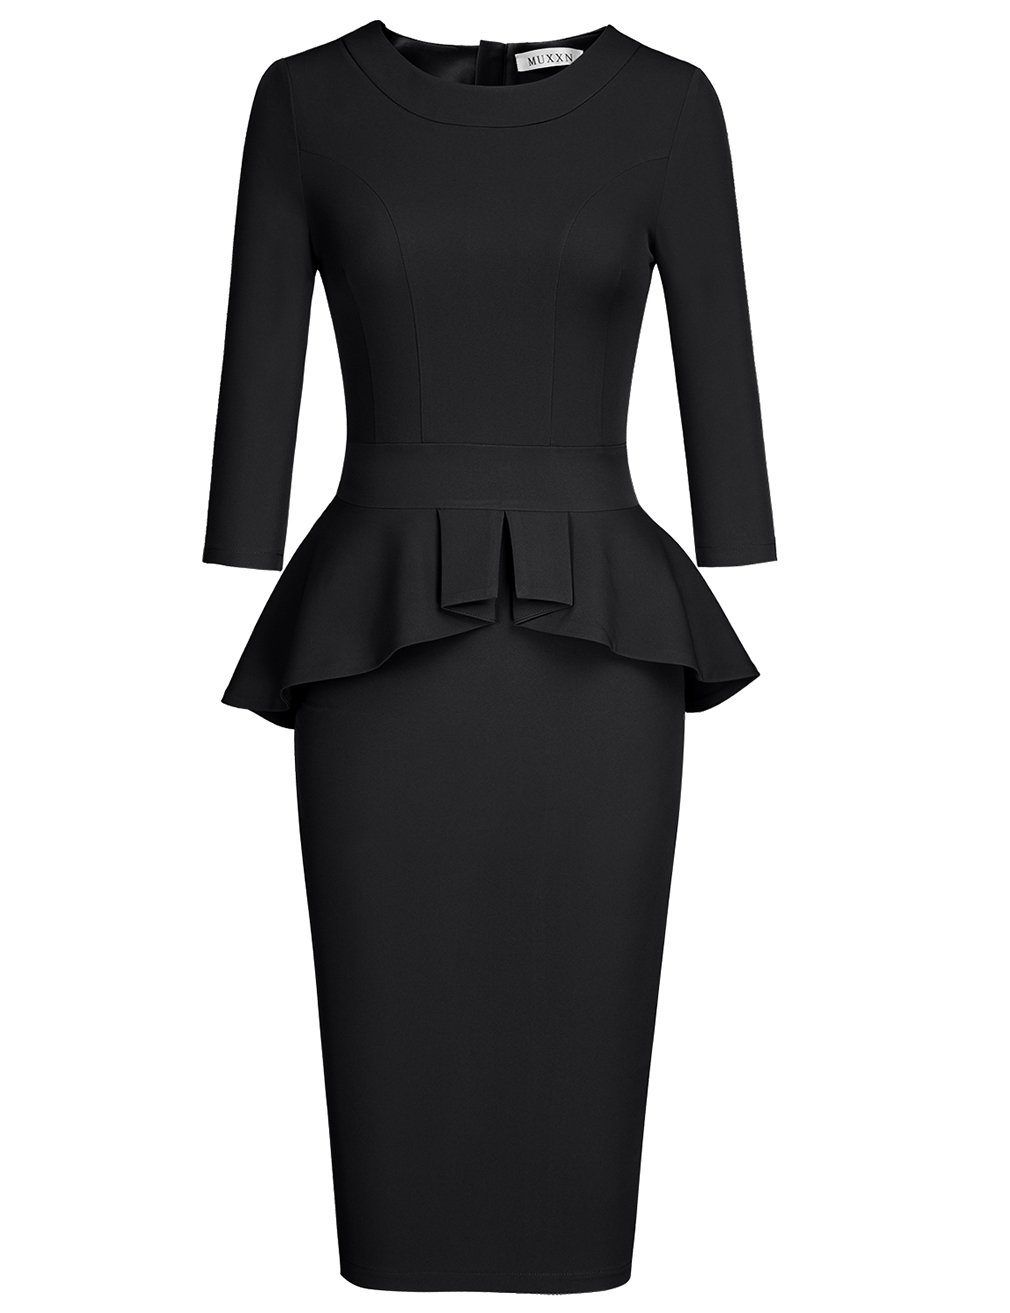 MUXXN Women's Plus Size Bodycon Flattering Cocktail Party Dress (Black XXL)